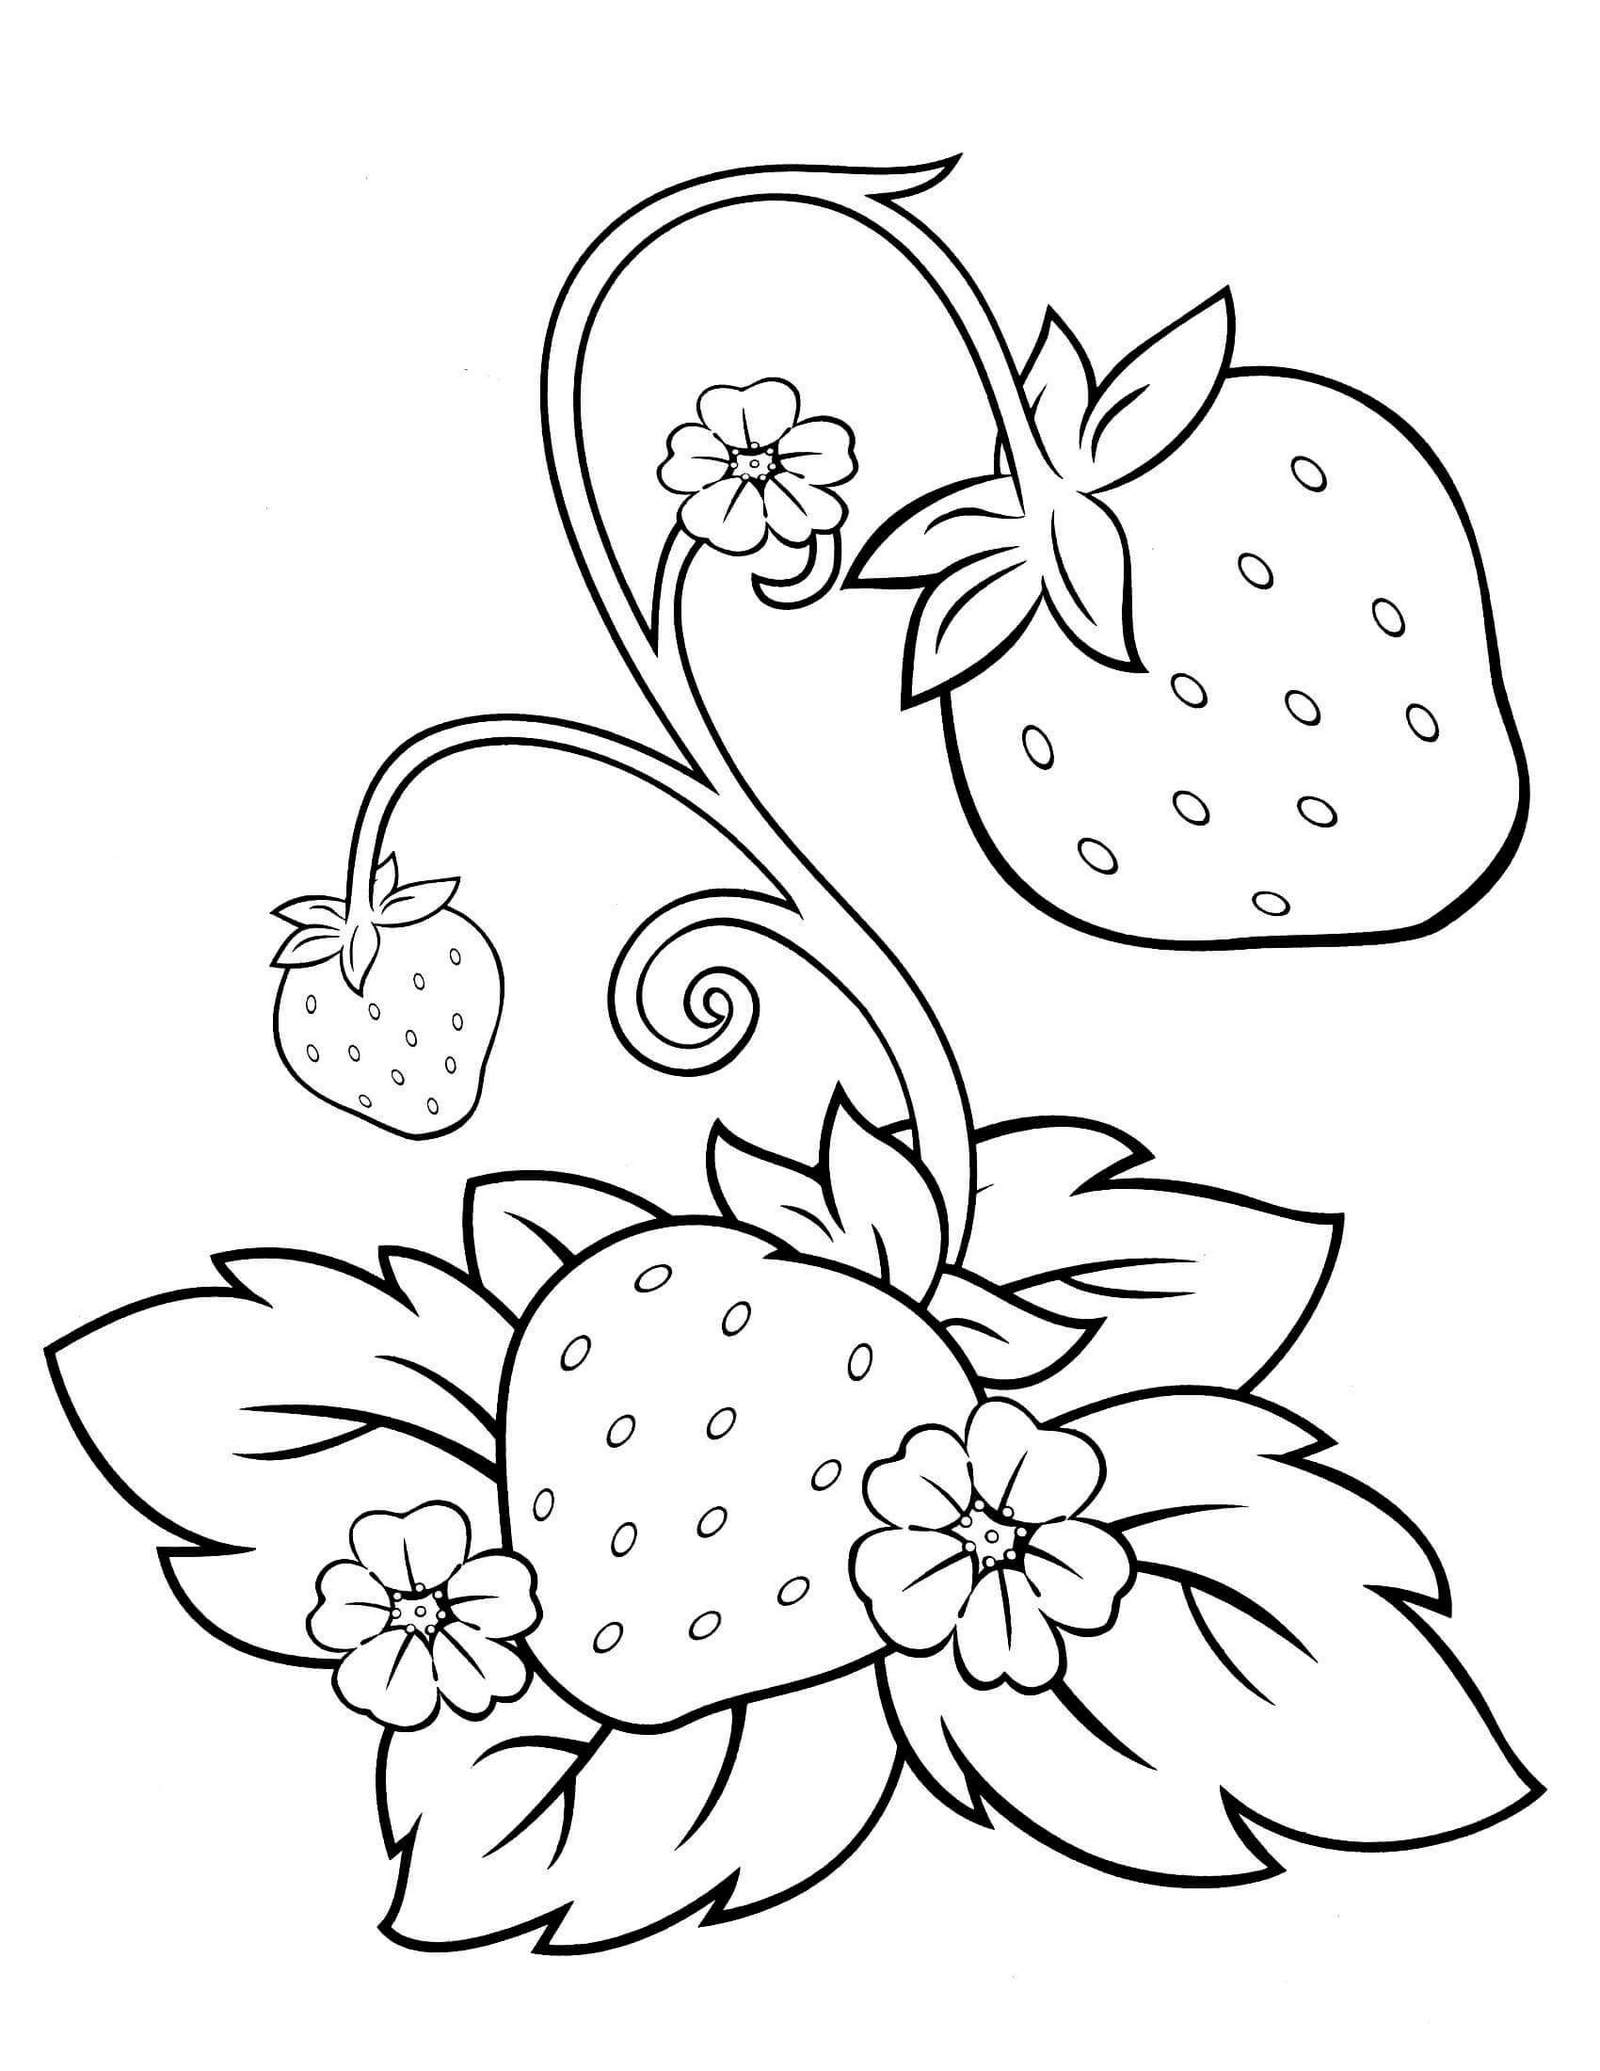 strawberry coloring image strawberry coloring pages downloadable and printable images image coloring strawberry